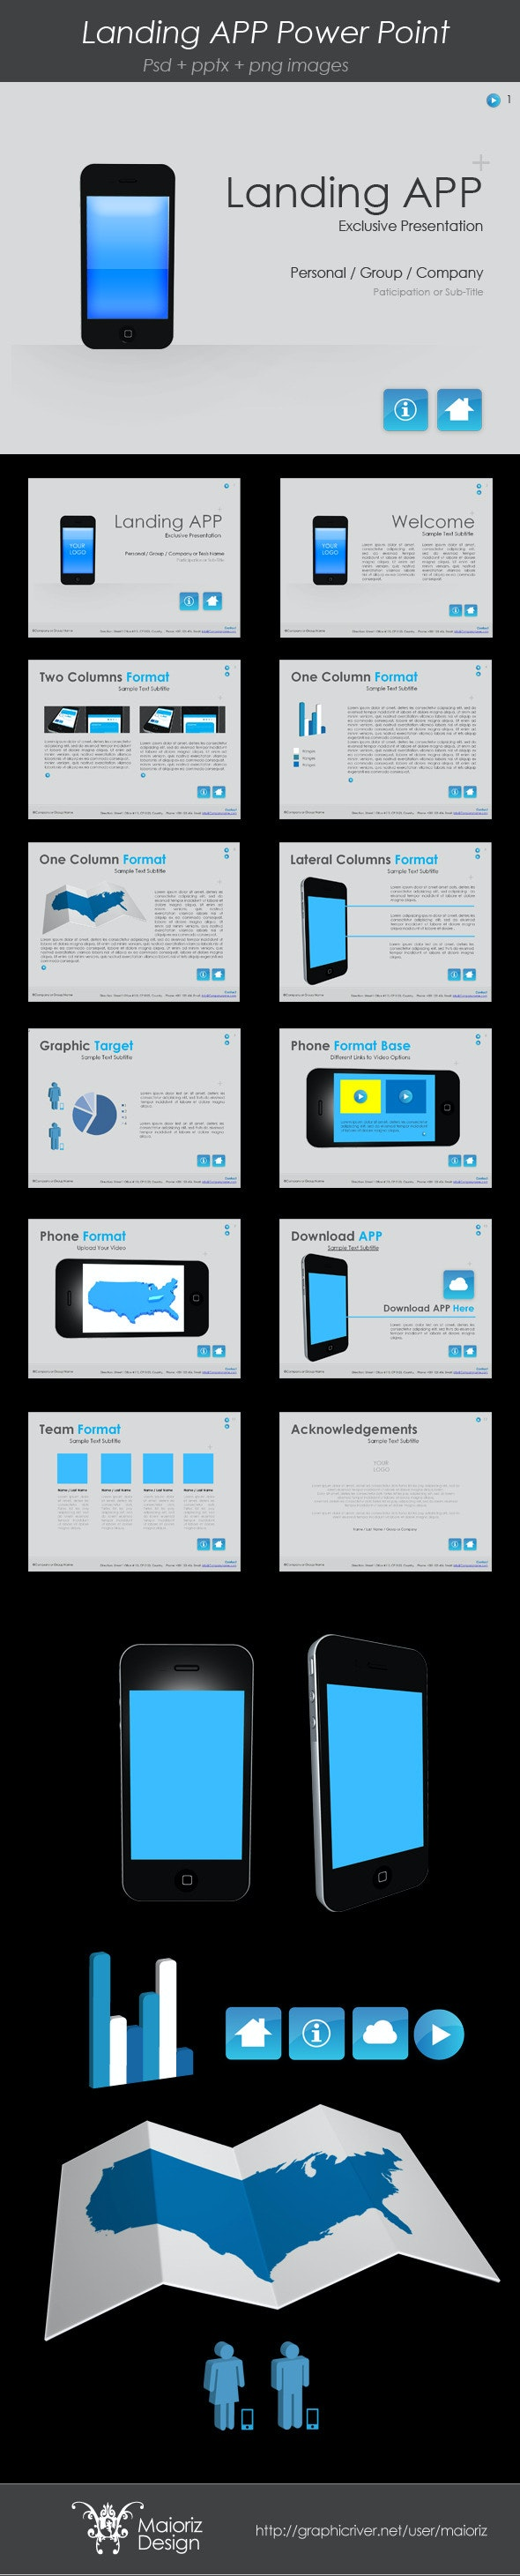 Landing App PowerPoint Template - PowerPoint Templates Presentation Templates